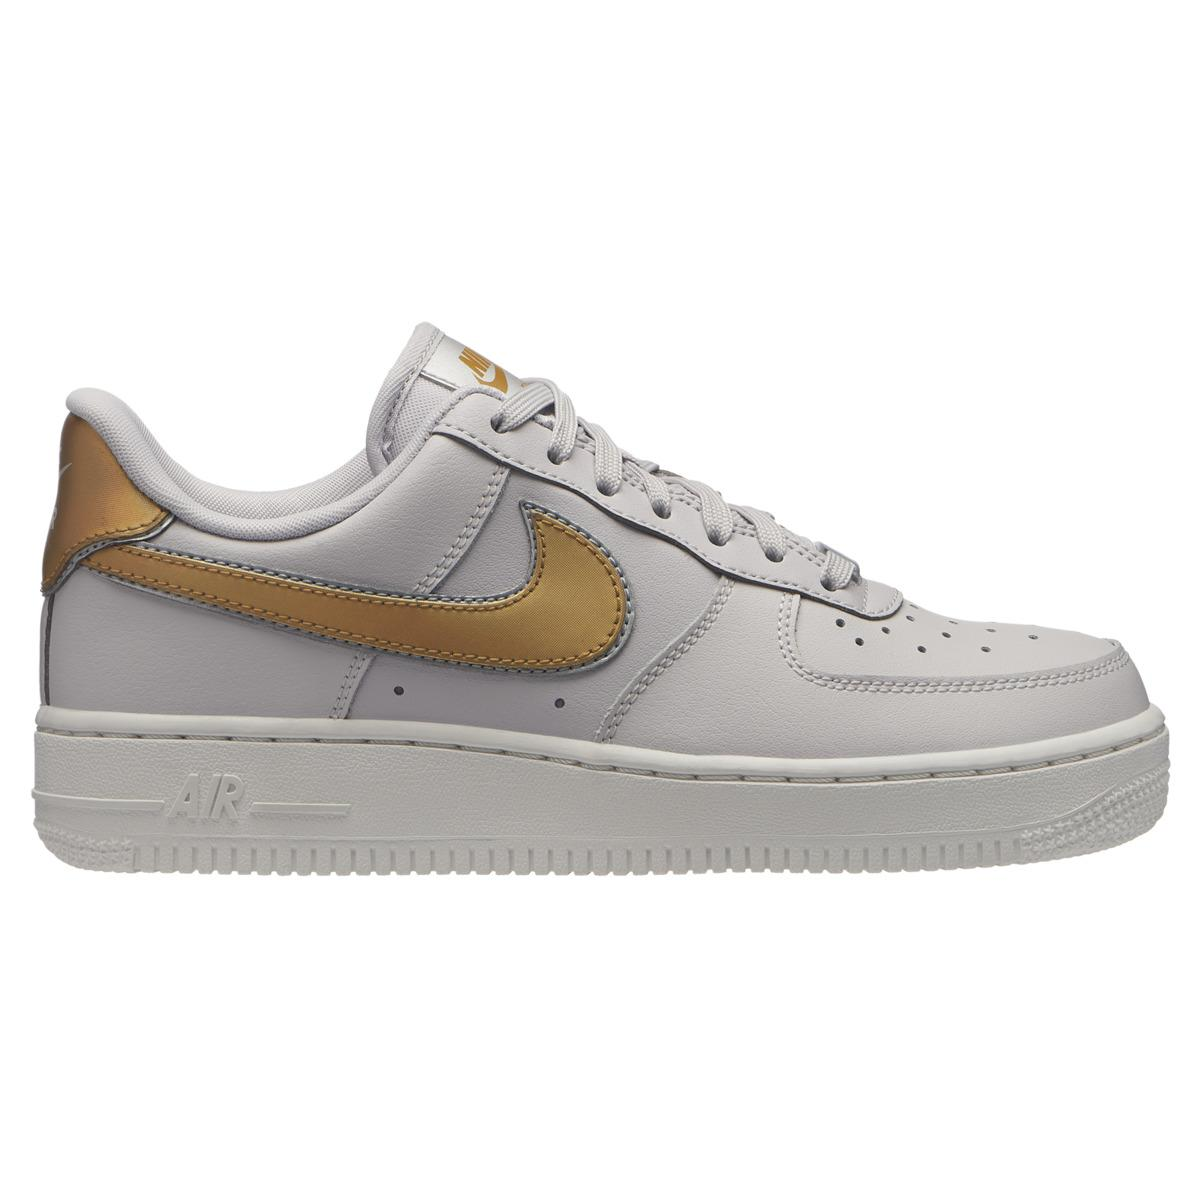 db93bee3c2234 Nike Air Force 1 07 Metallic Casual Trainers in White - Lyst